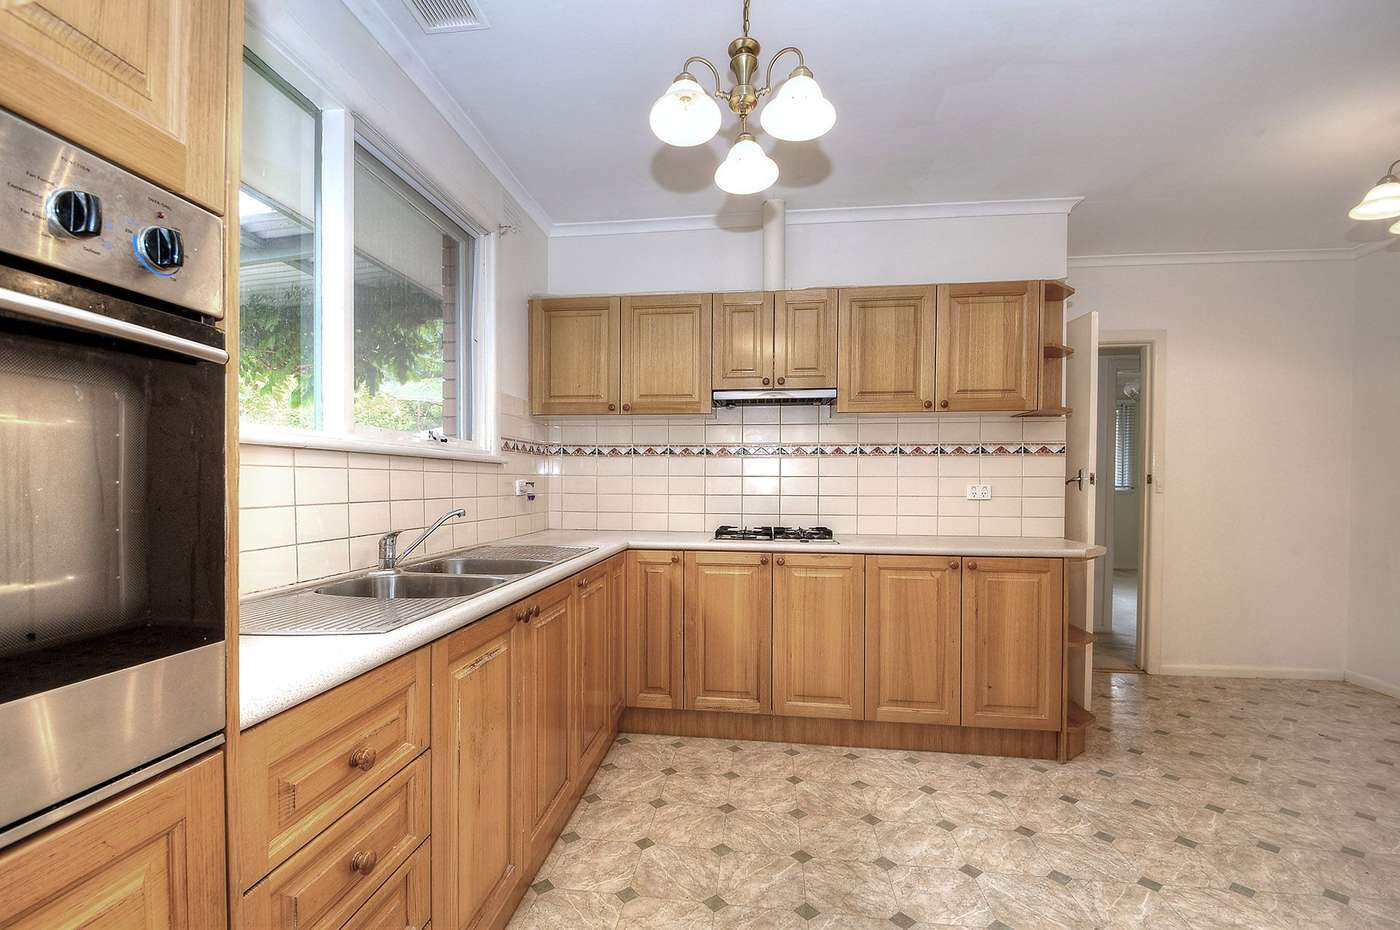 Main view of Homely house listing, 27 Viggers Parade, Glen Waverley, VIC 3150